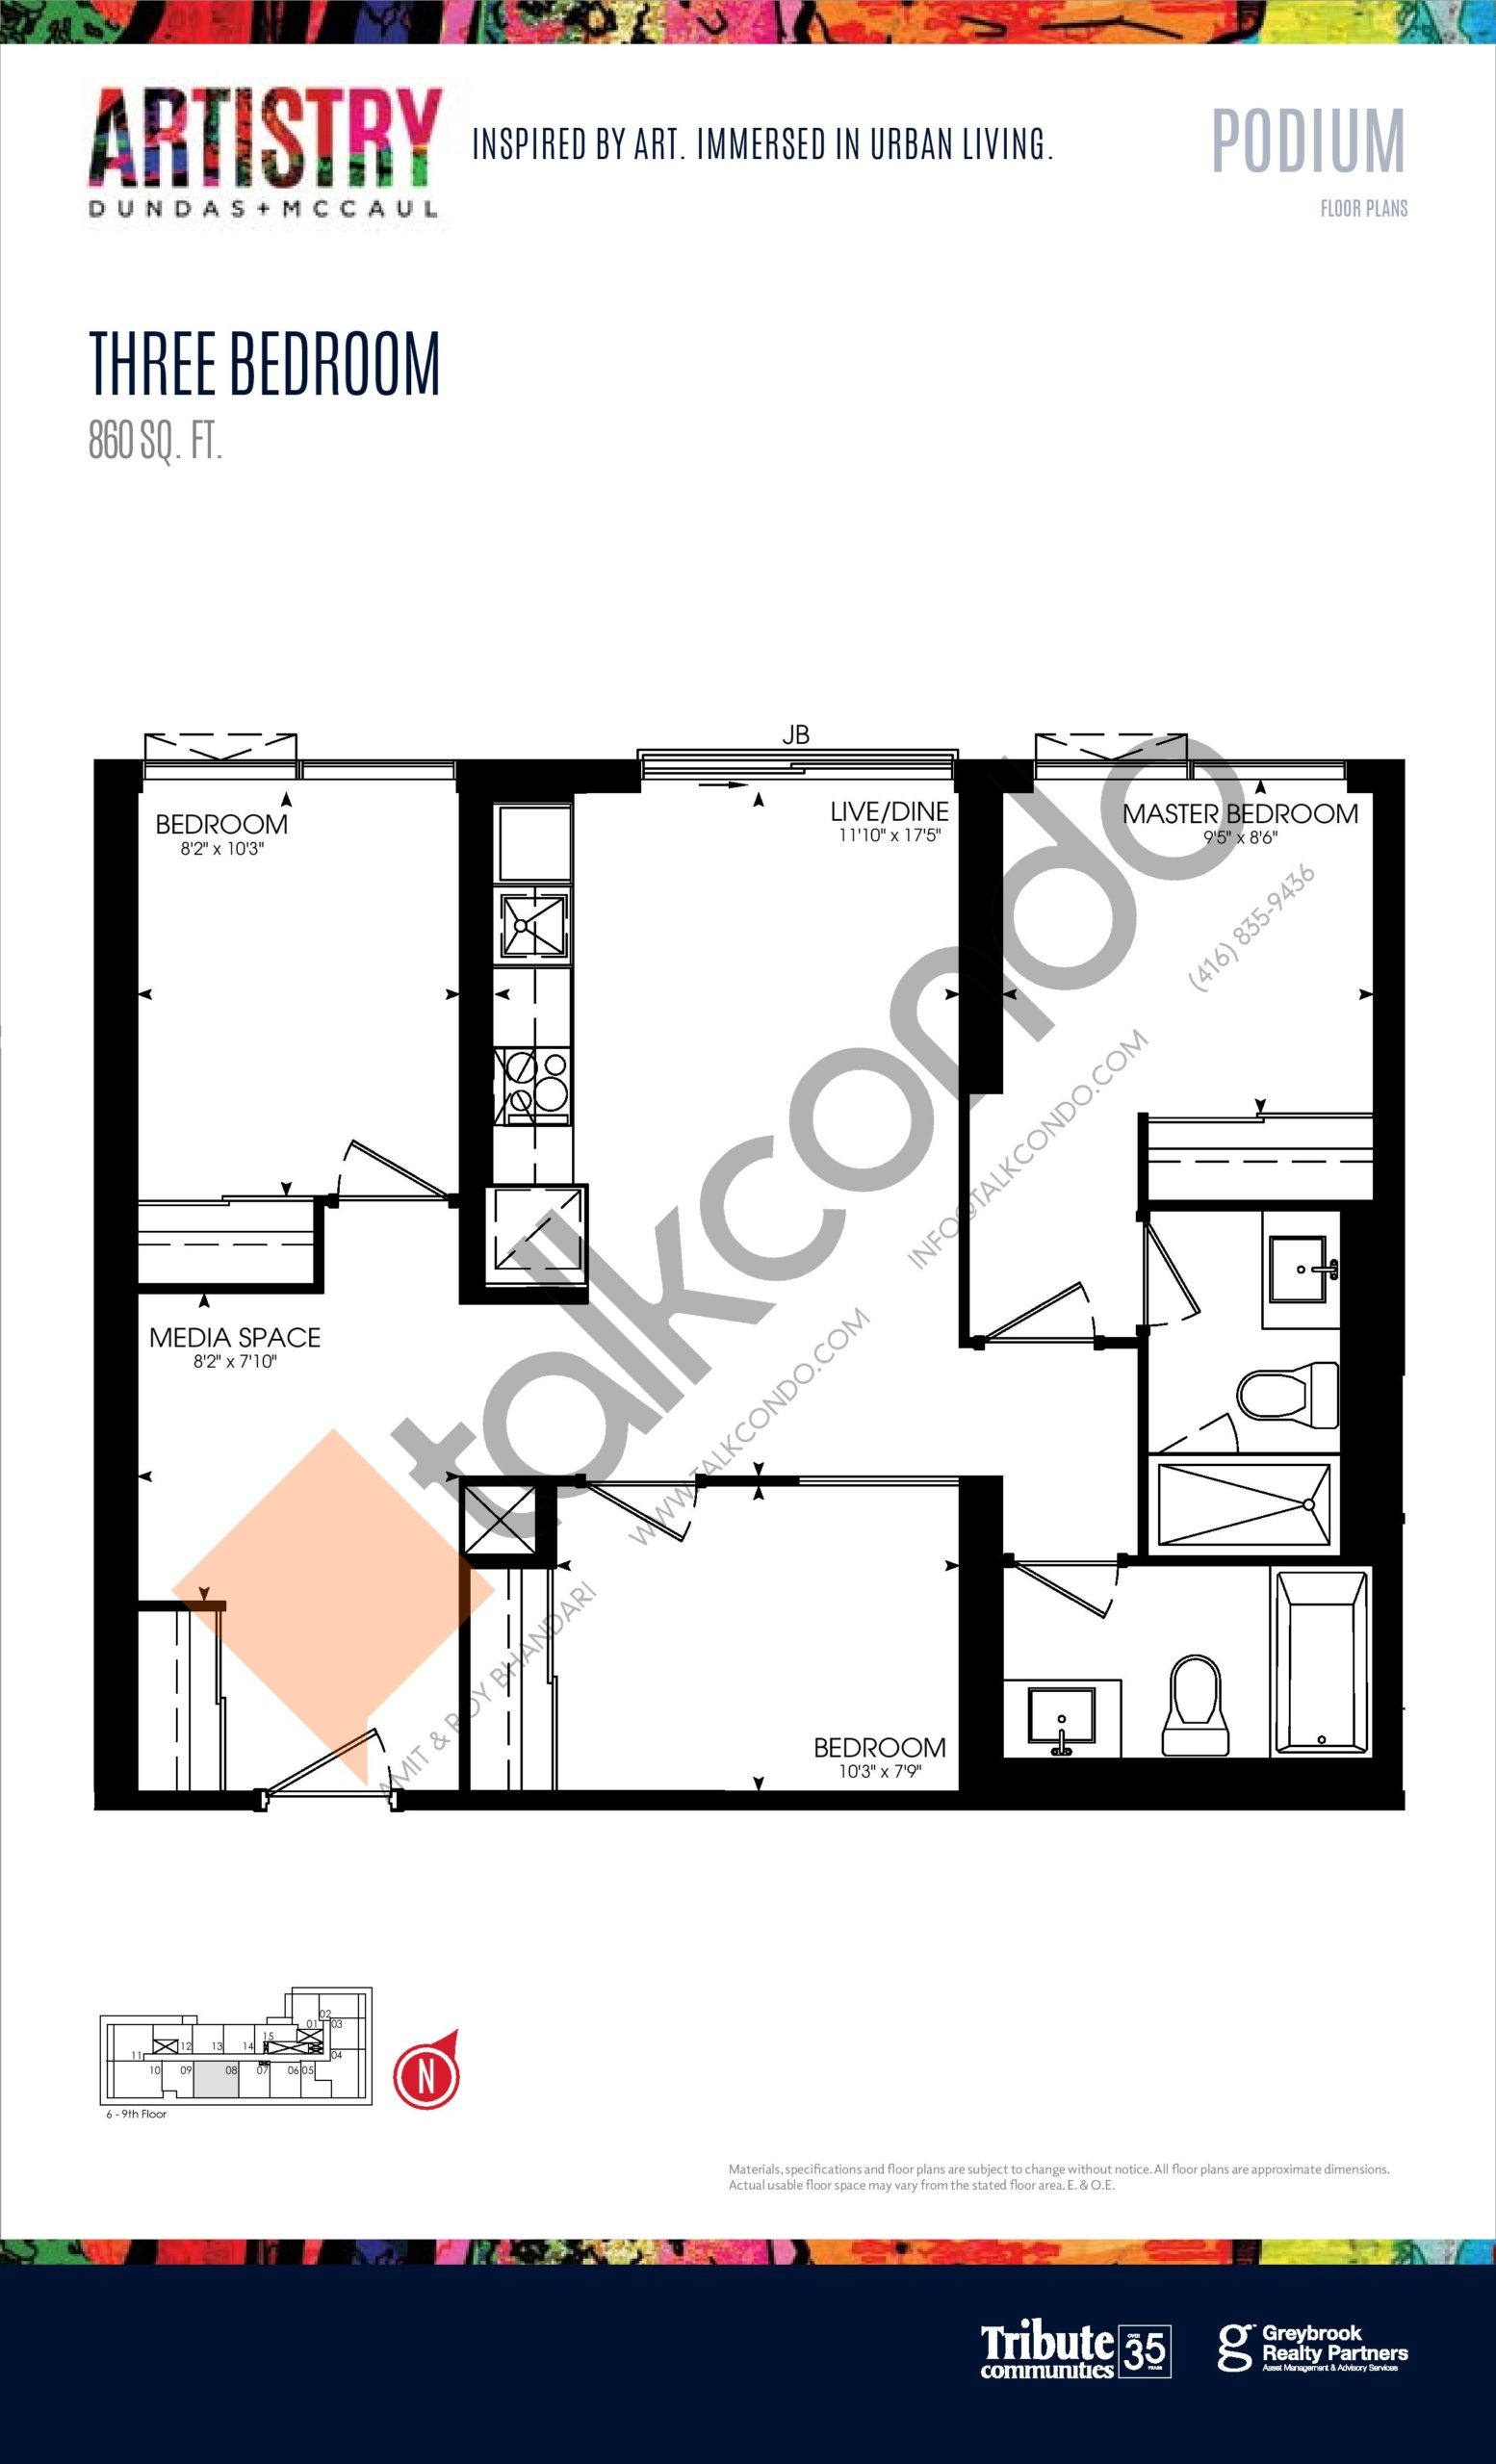 860 sq. ft. - Podium Floor Plan at Artistry Condos - 860 sq.ft